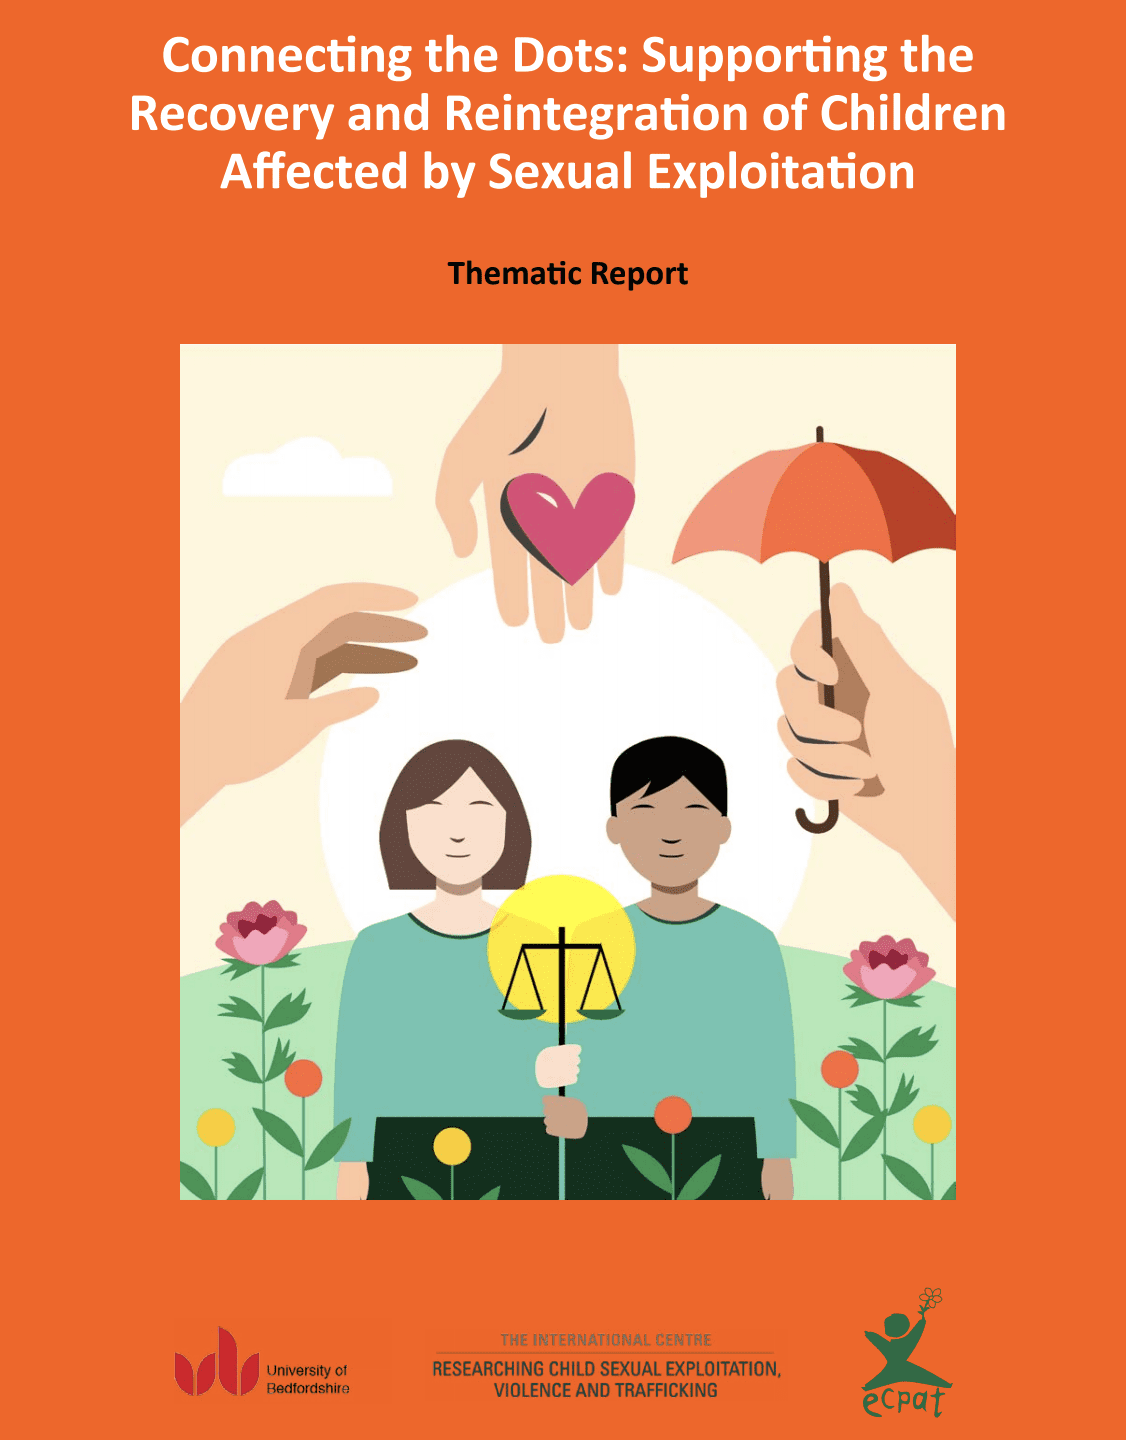 Connecting the Dots: Supporting the Recovery and Reintegration of Children Affected by Sexual Exploitation